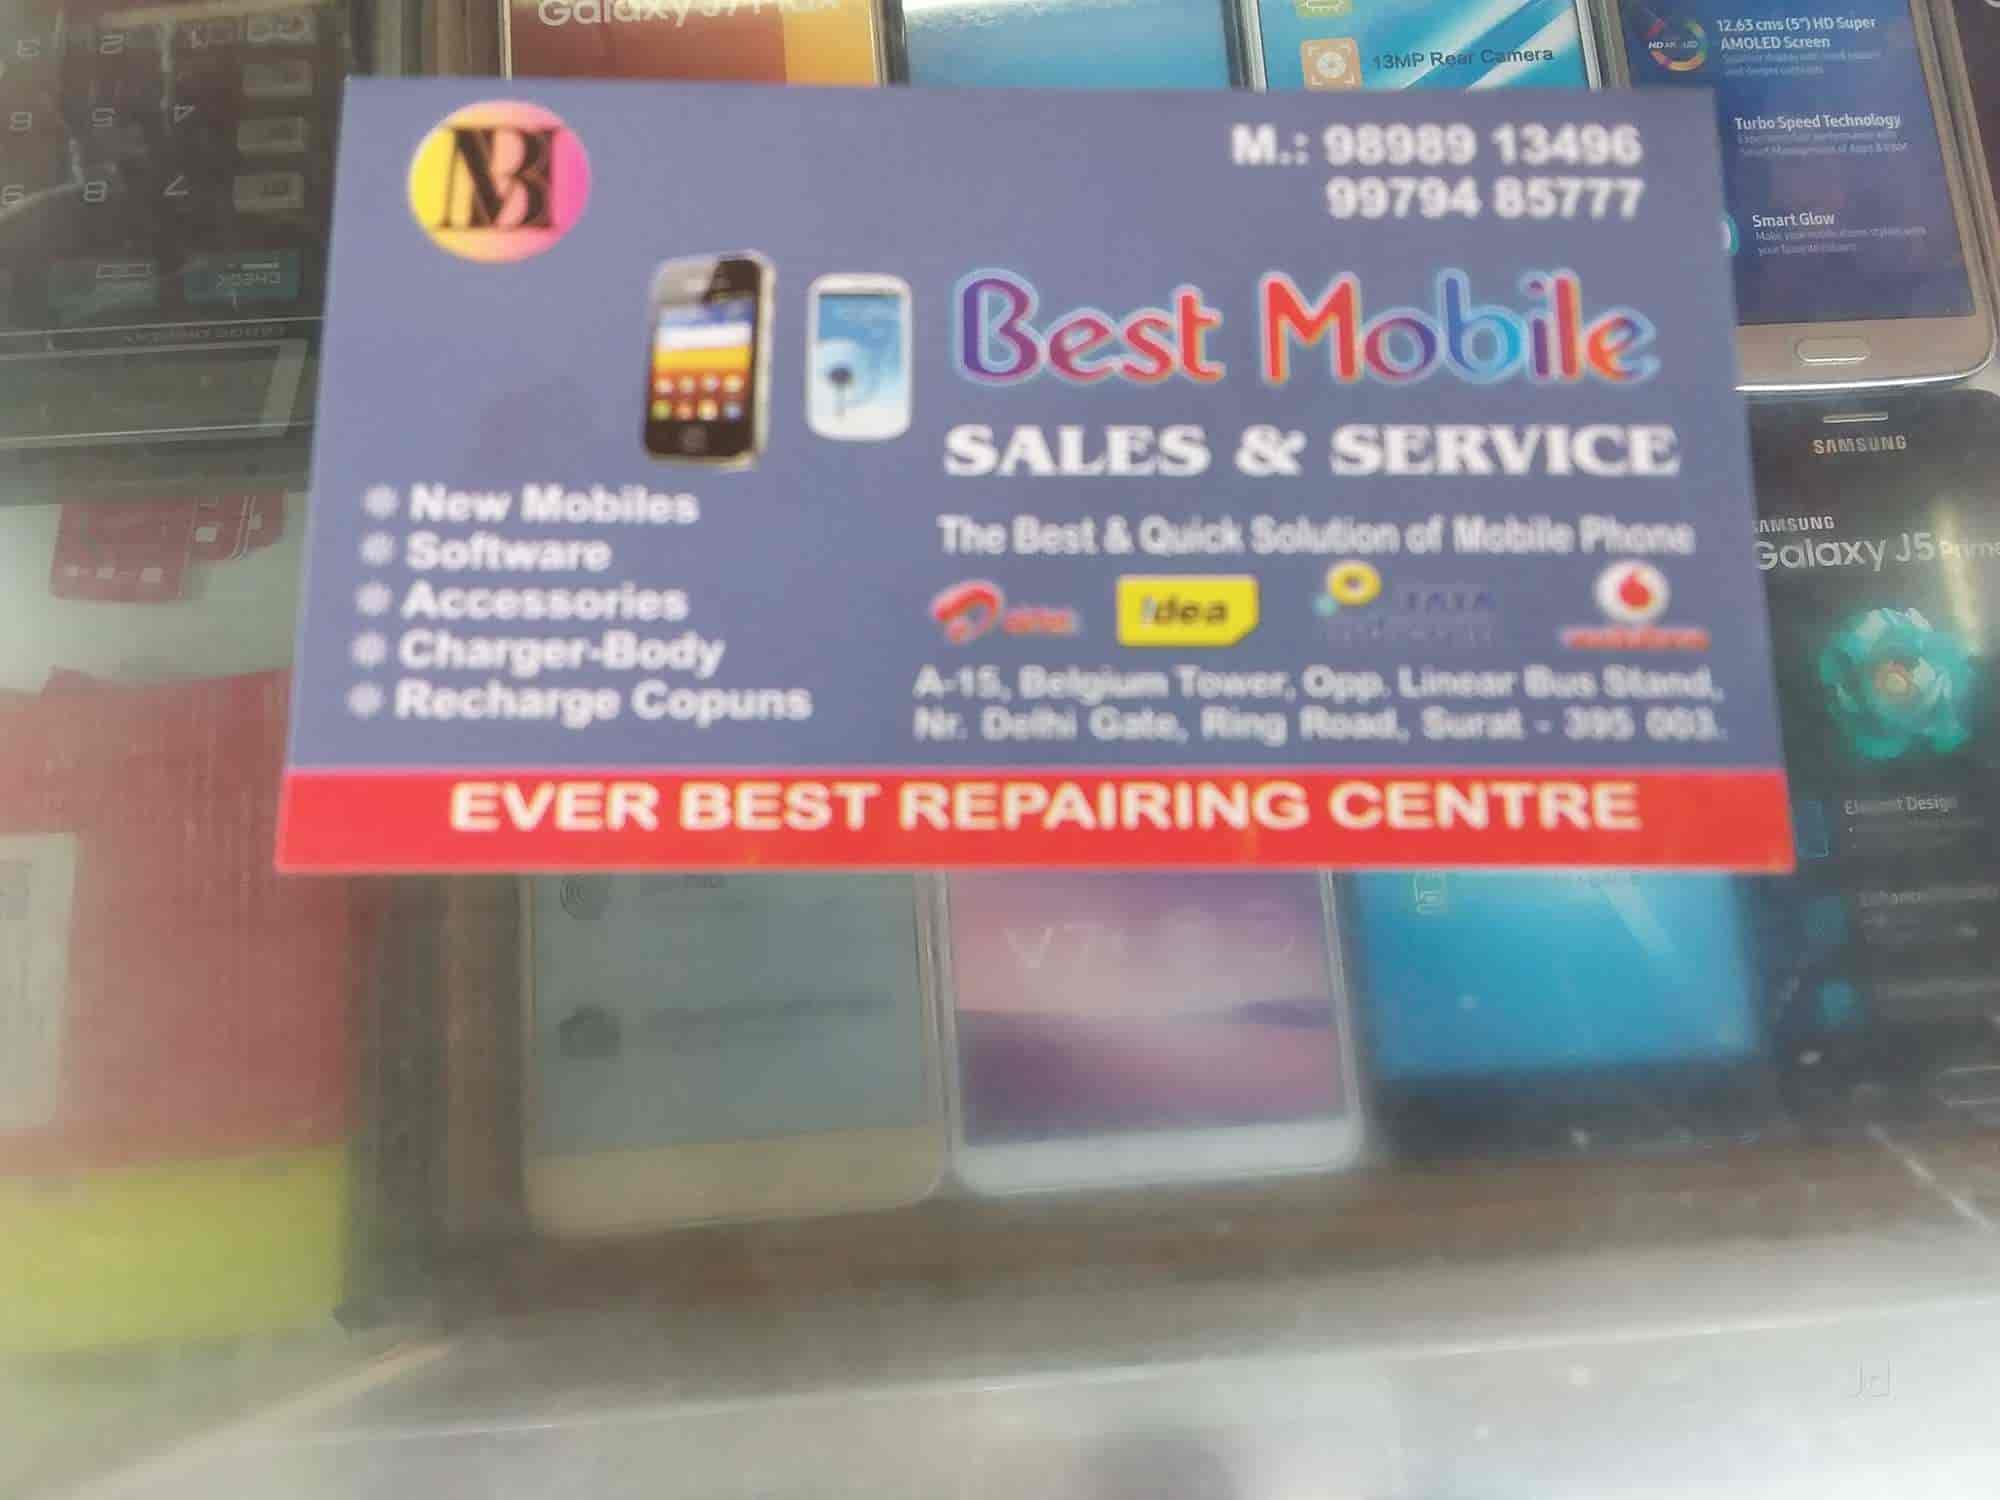 Best Mobile Sales And Services Photos, Ring Road, Surat- Pictures